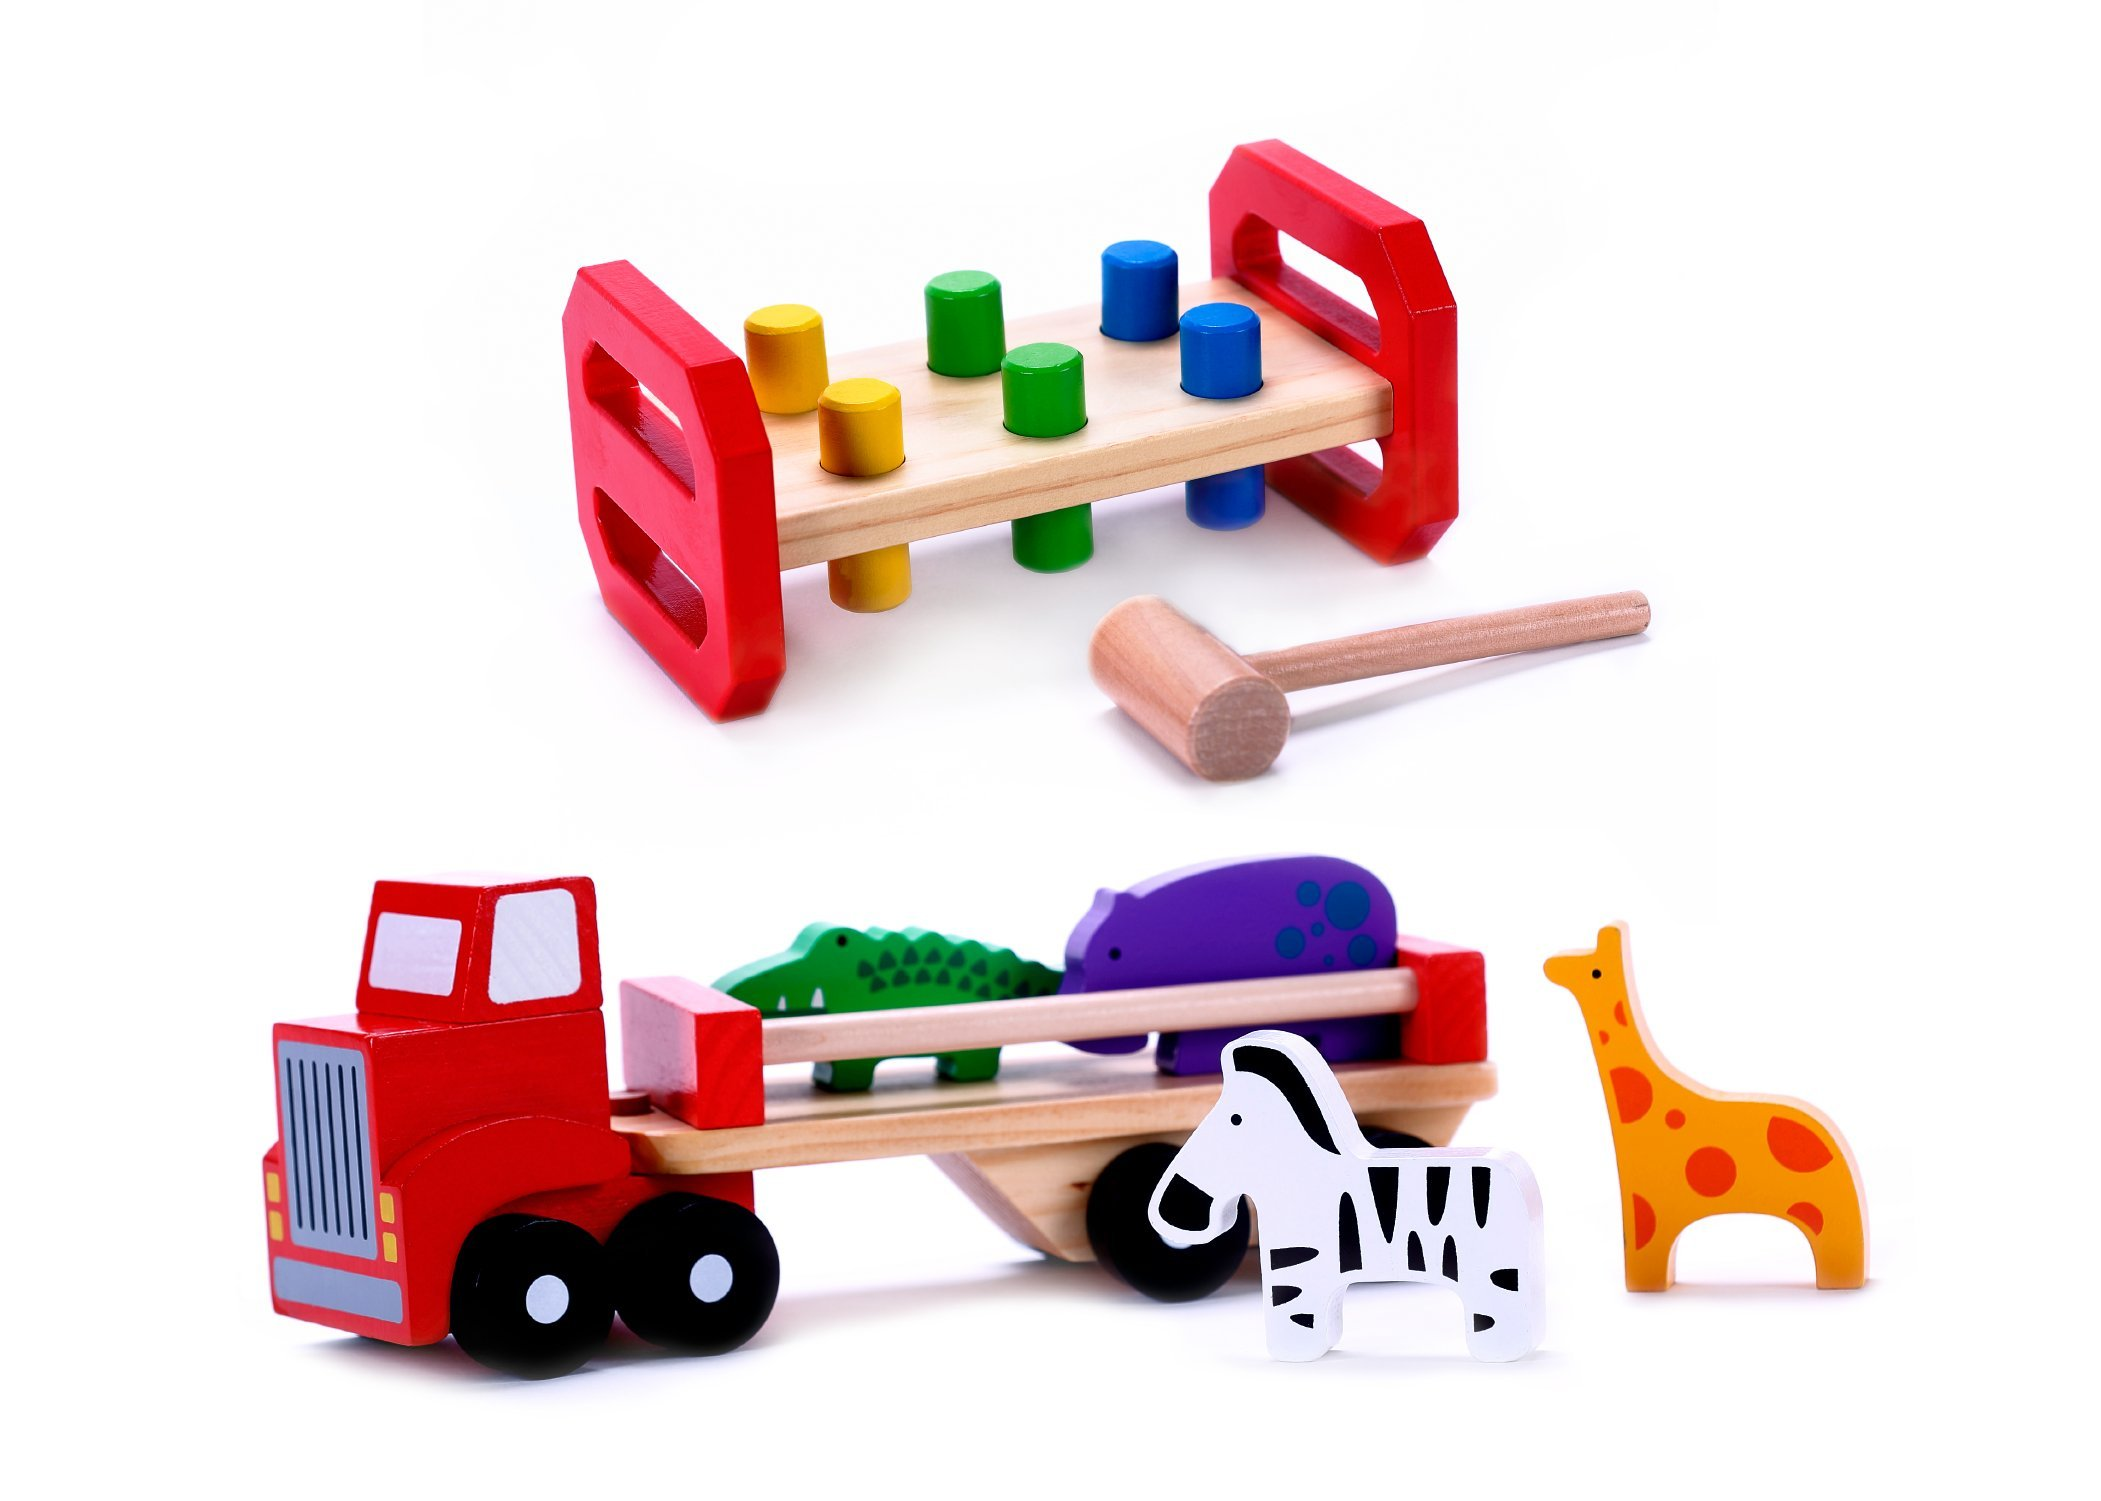 Cubbie Lee The Classic Wood Toy Bundle (Wooden Pounding Bench with Pegs & Animal Truck w/Detachable Trailer) for Toddlers, Preschool Age | Buy the Bundle & Save! | Great Gift for 2, 3 & 4 Year Olds